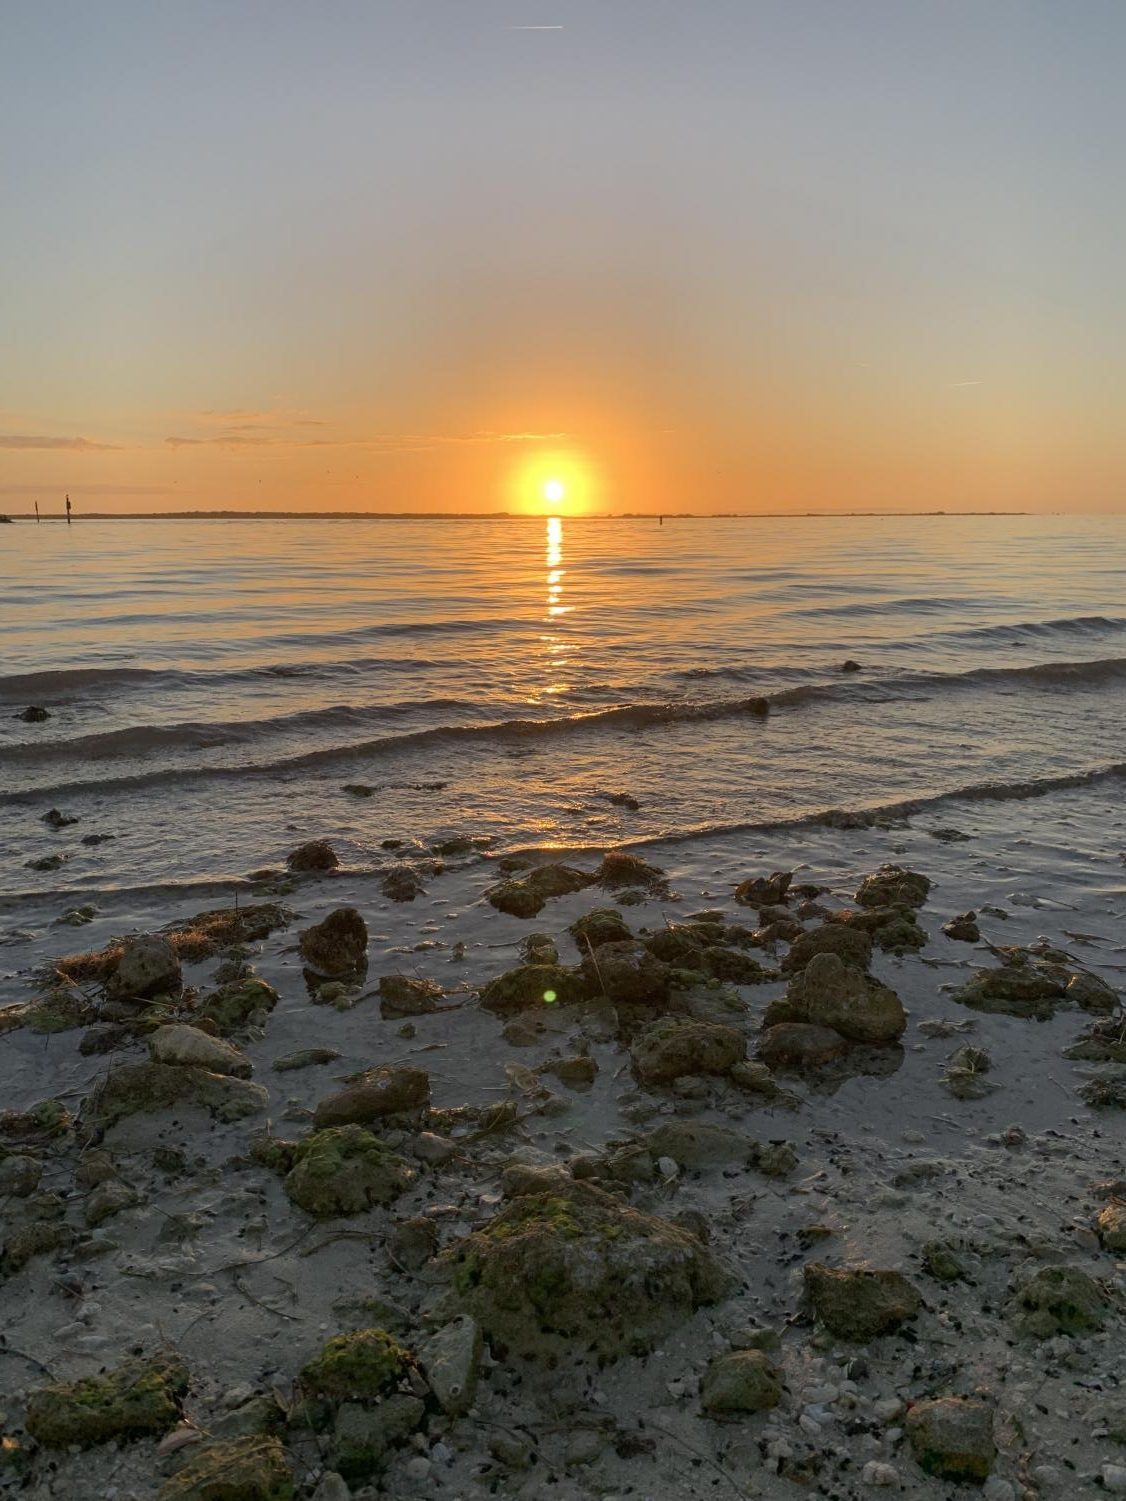 One popular place to visit during summer can be the Dunedin Causeway to view the sunsets.